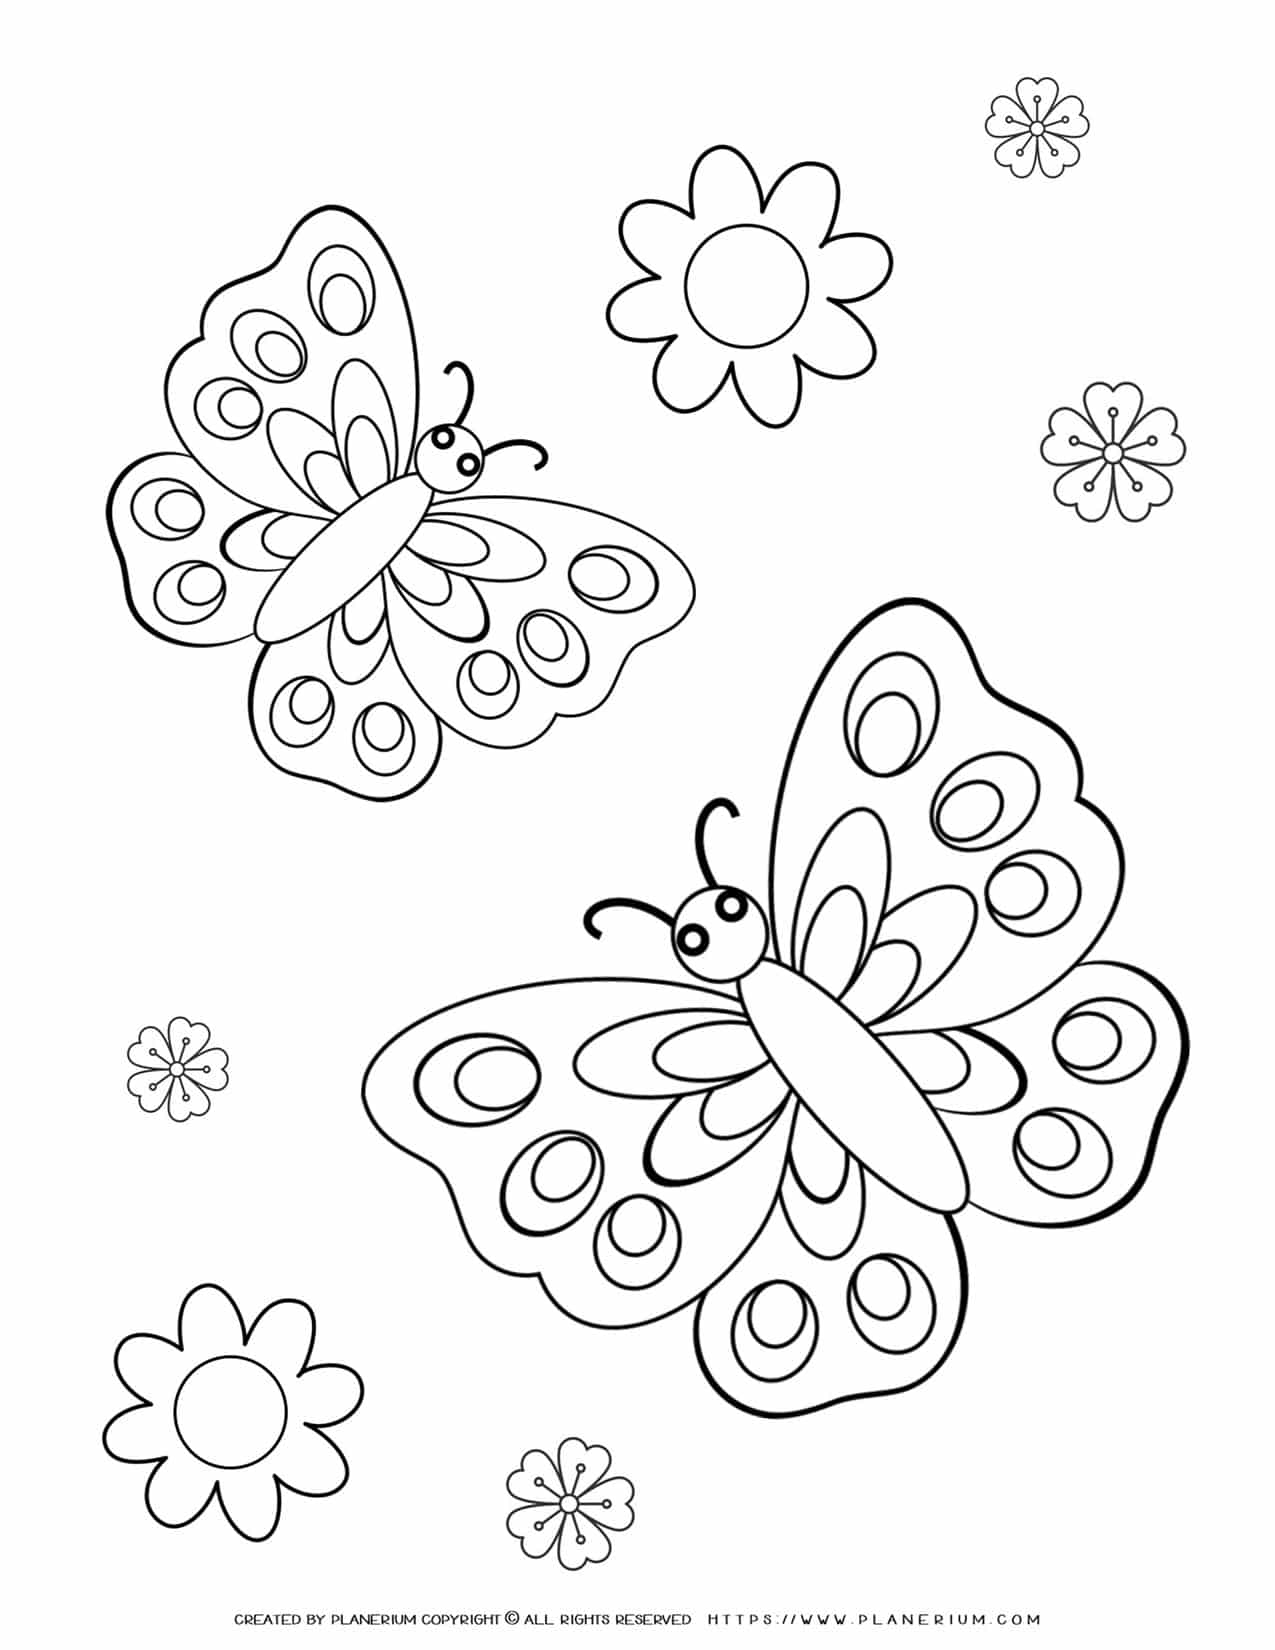 Two Butterflies And Flowers | Planerium